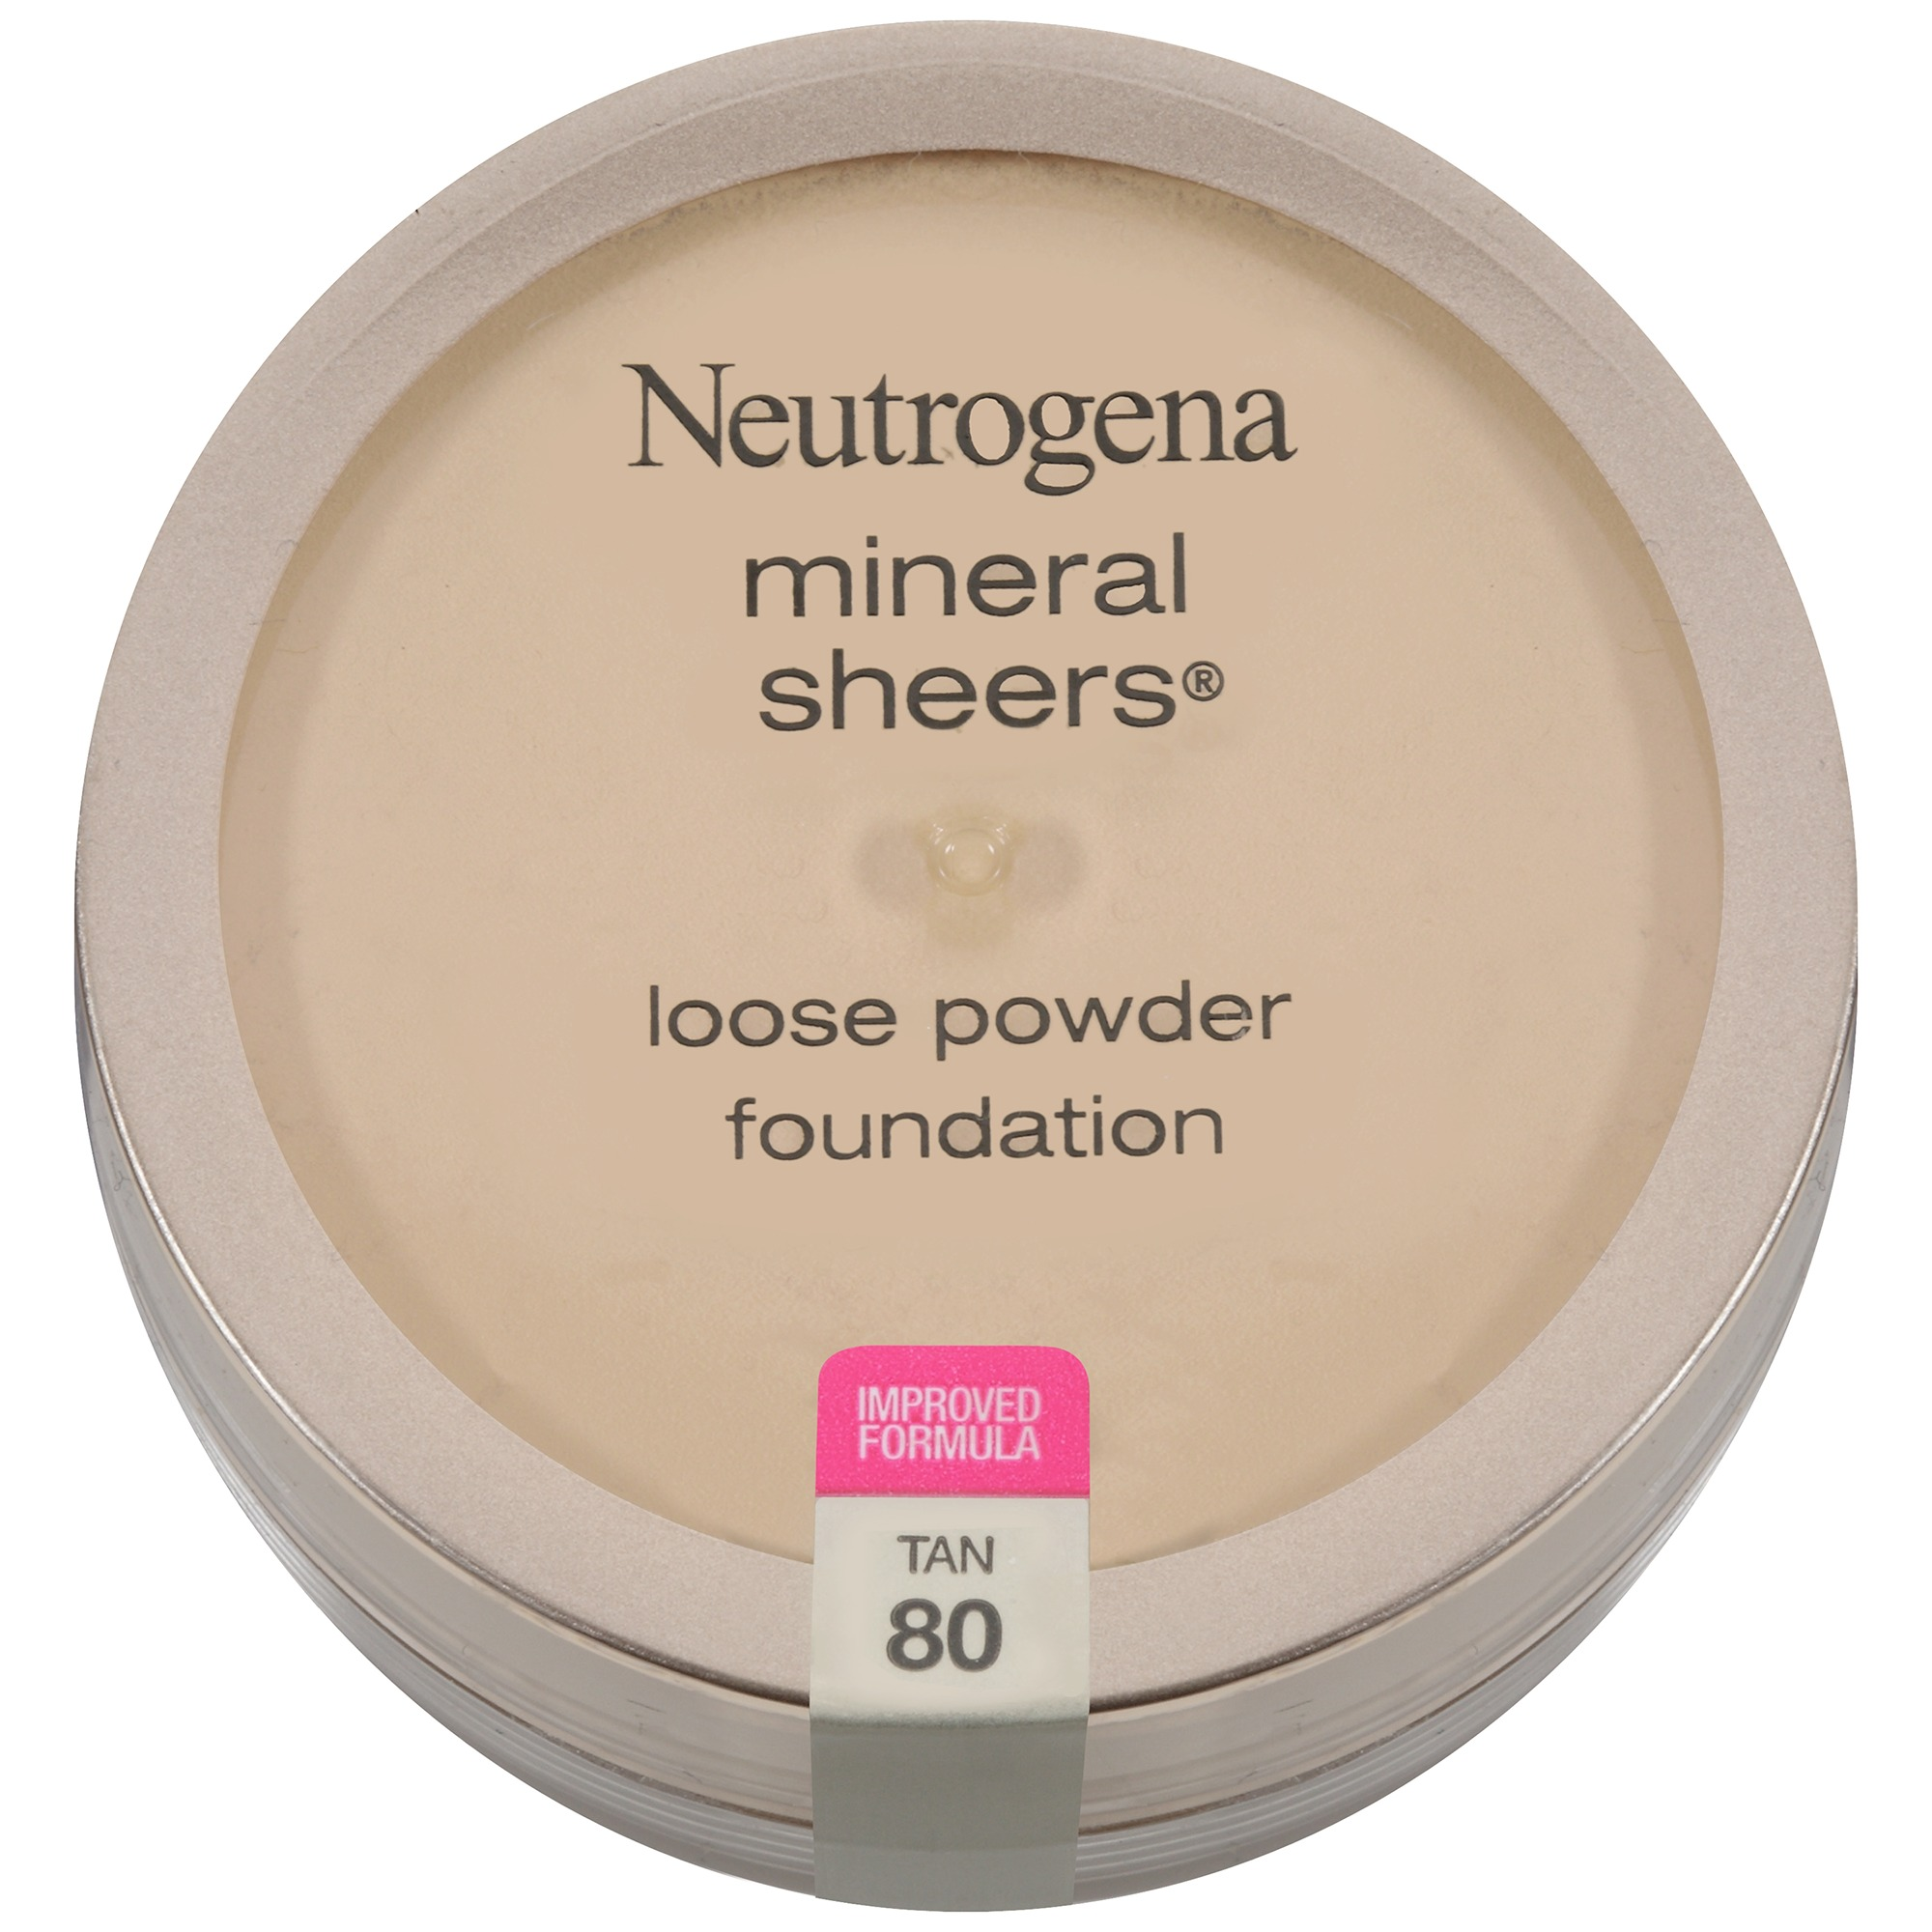 Neutrogena Mineral Sheers Loose Powder Foundation,Tan 80, .19 Oz